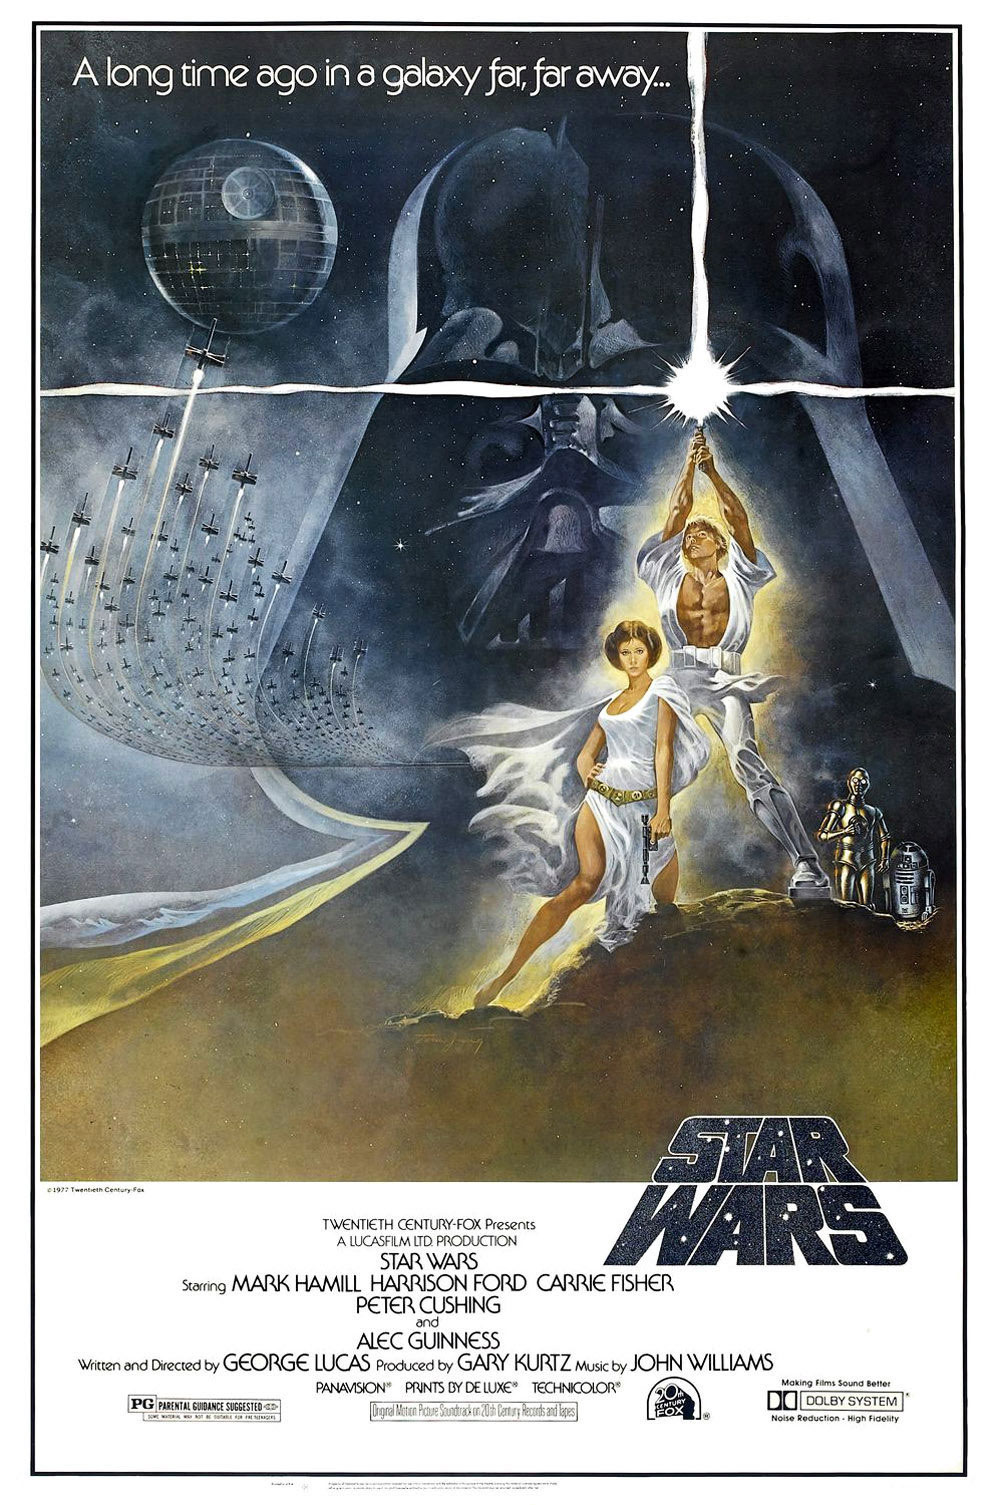 Star Wars Science Fiction Movie